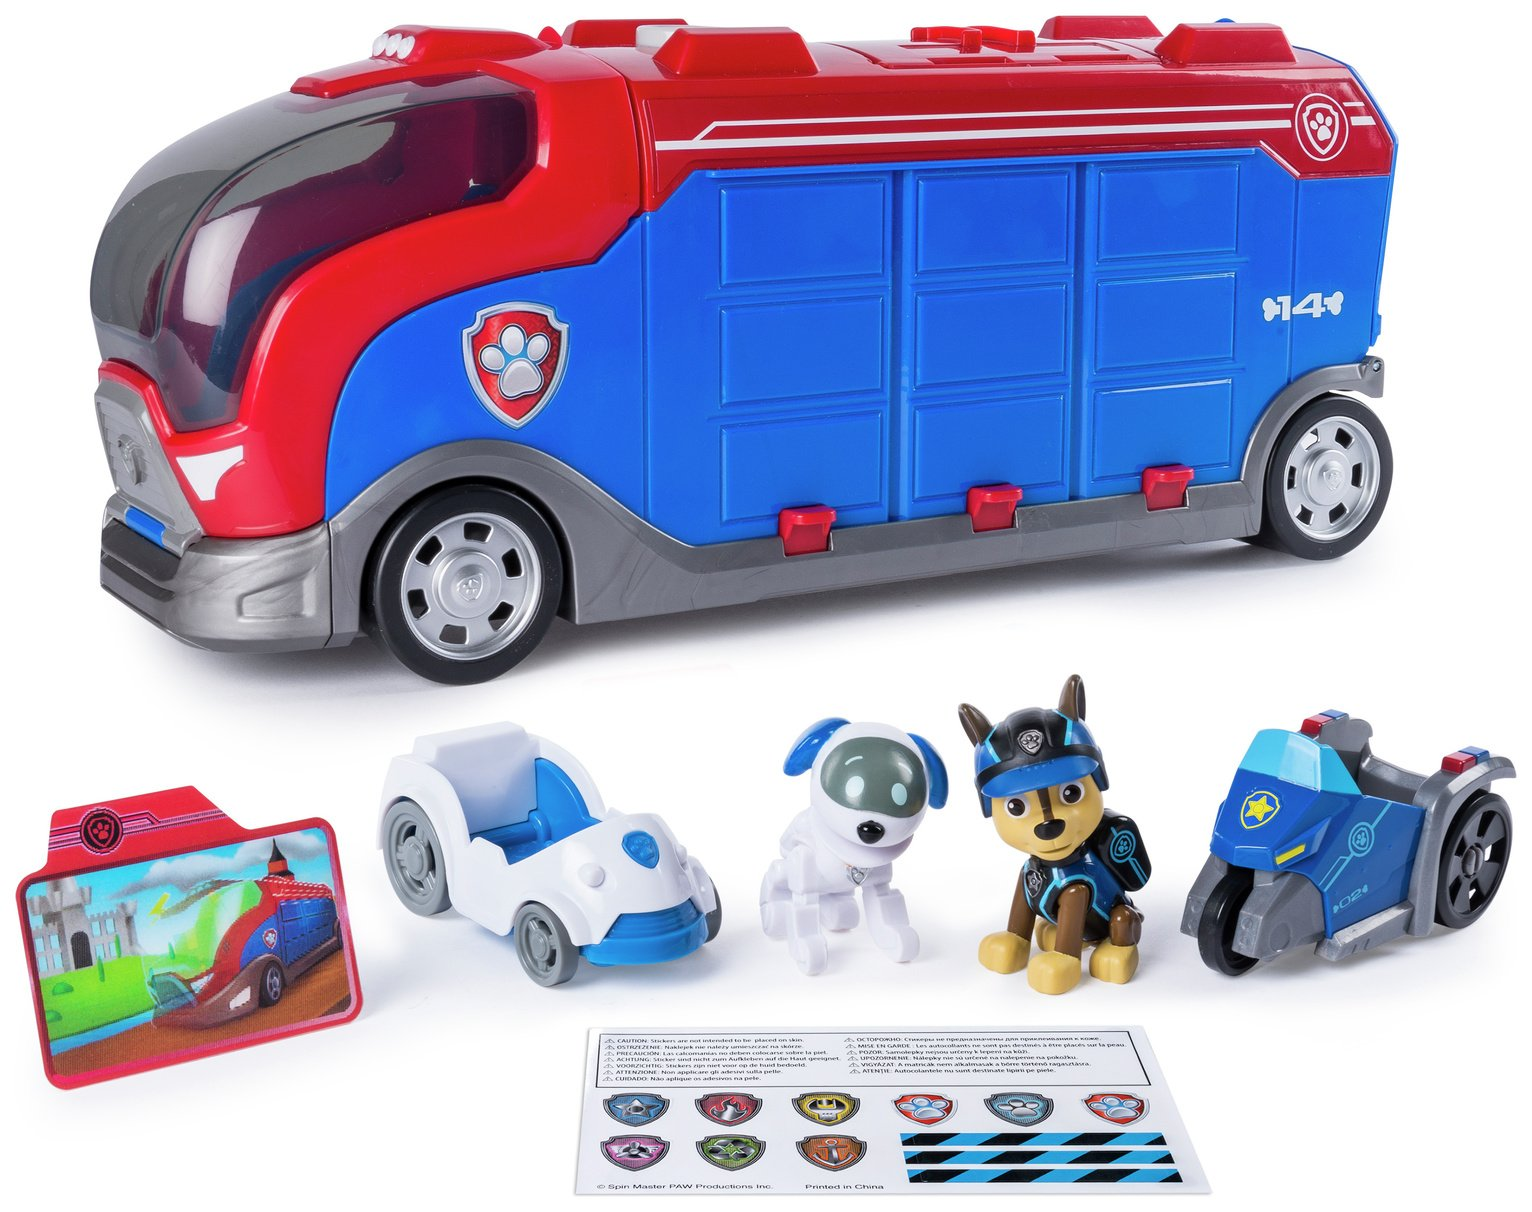 PAW Patrol Mission Cruiser with Robo Dog & Vehicle from PAW Patrol